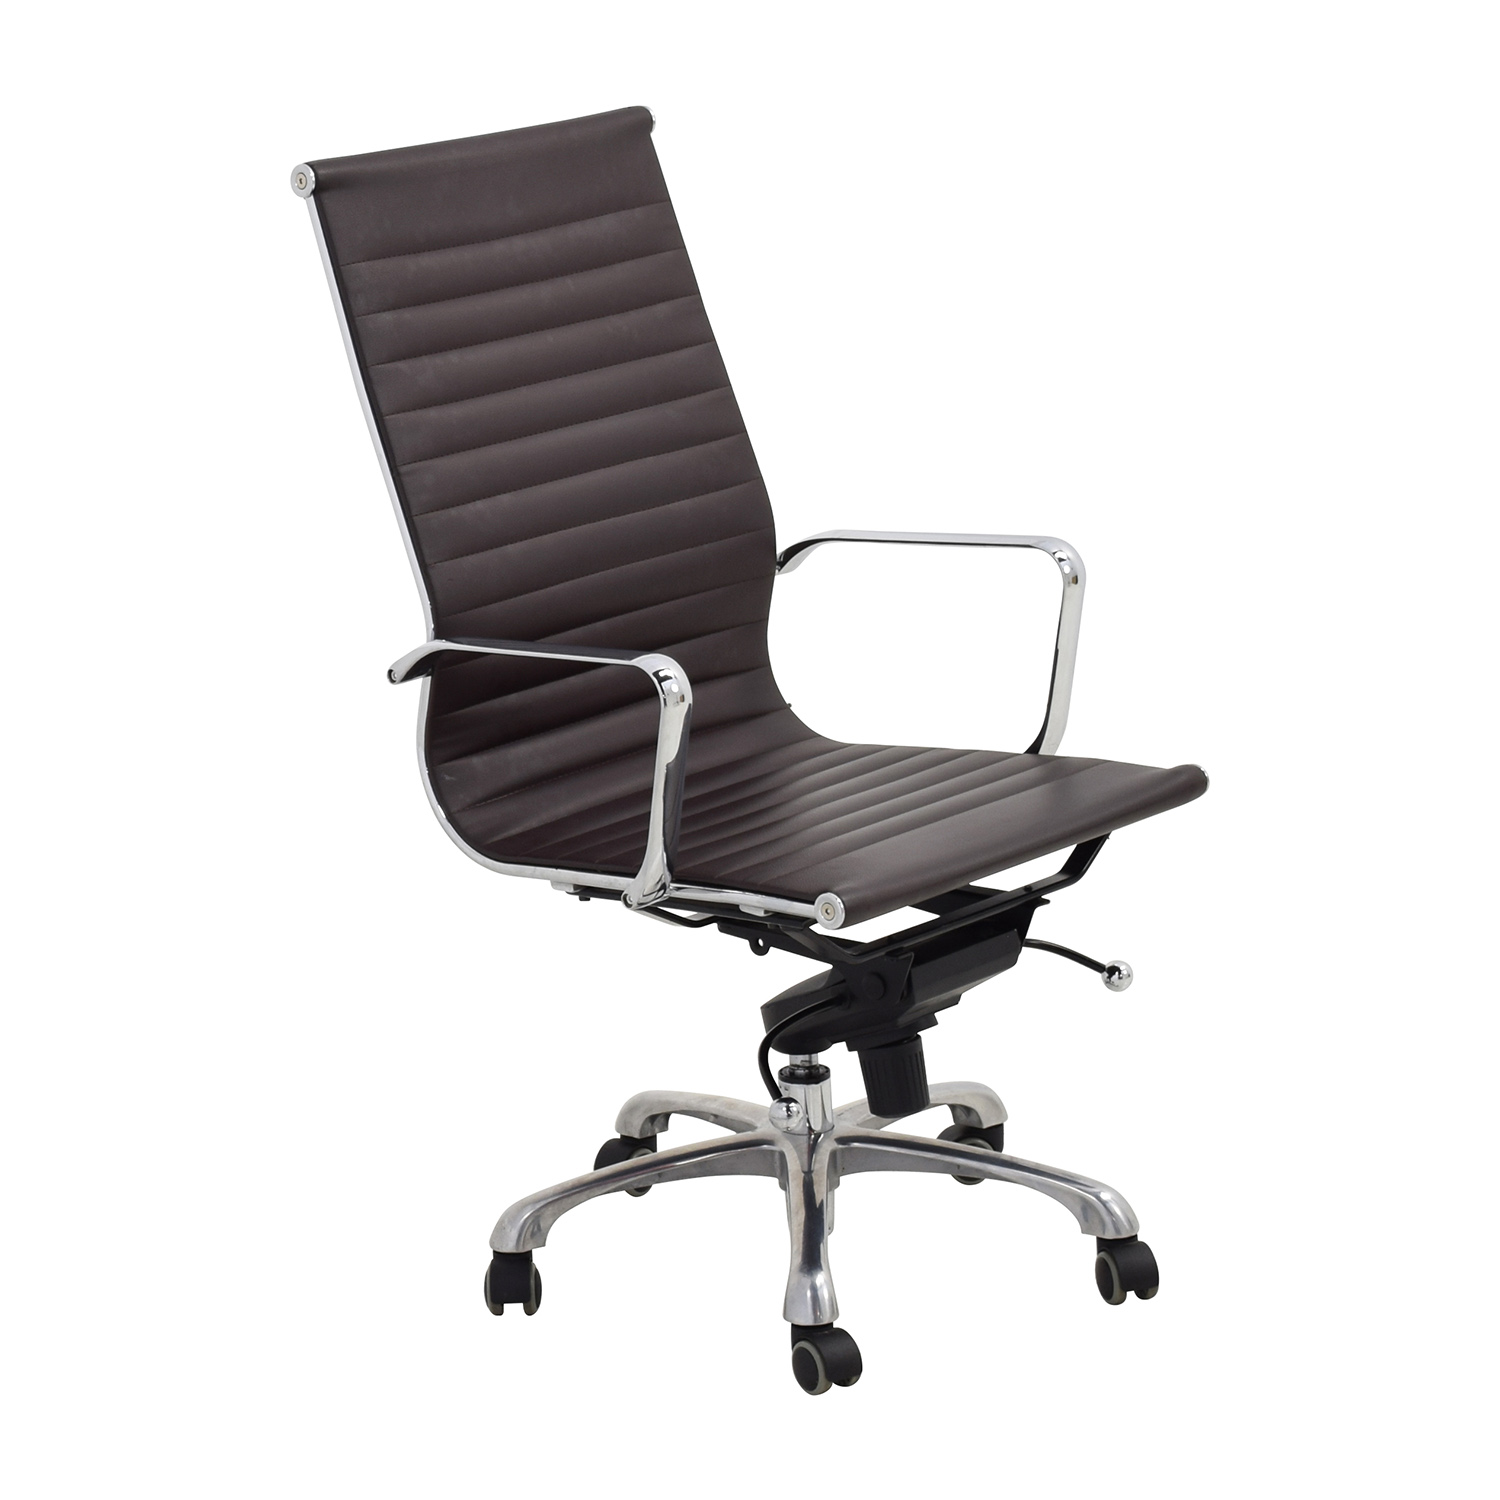 revolving chair second hand gothic wooden chairs 55 off eames style black adjustable office